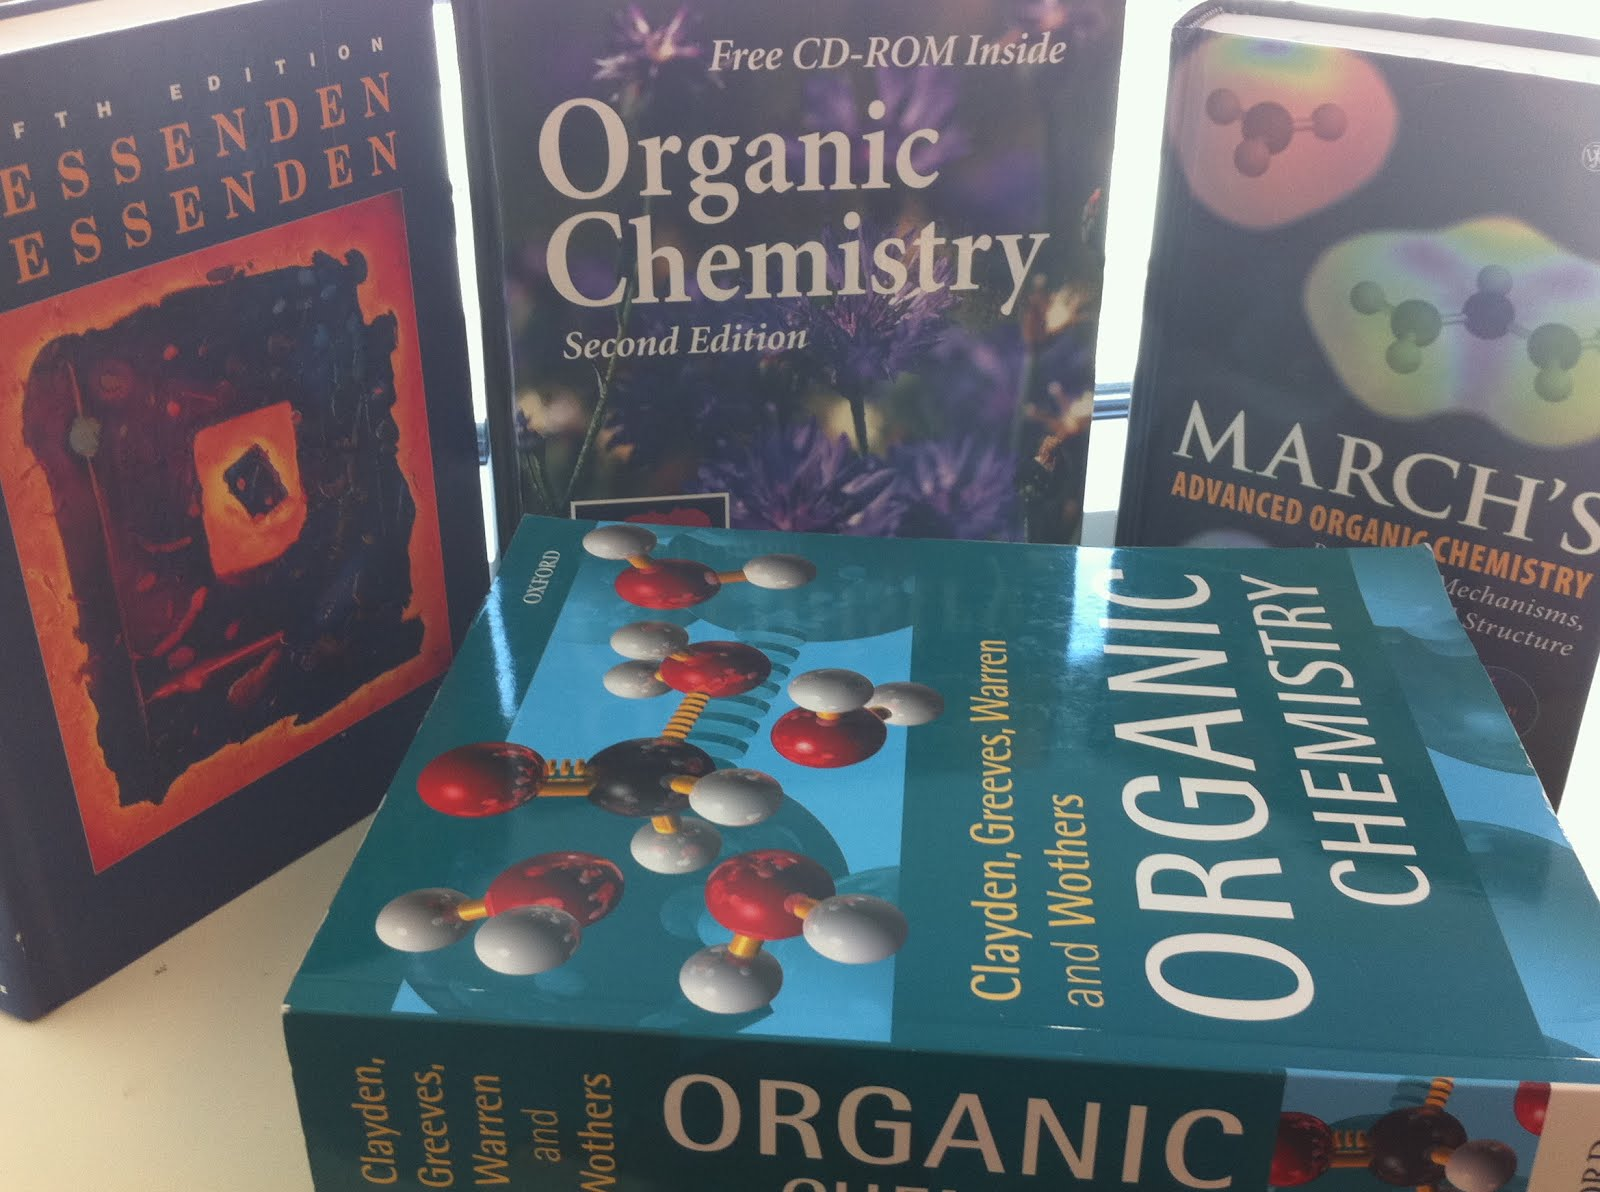 Would require rewriting the organic chemistry textbooks davies says